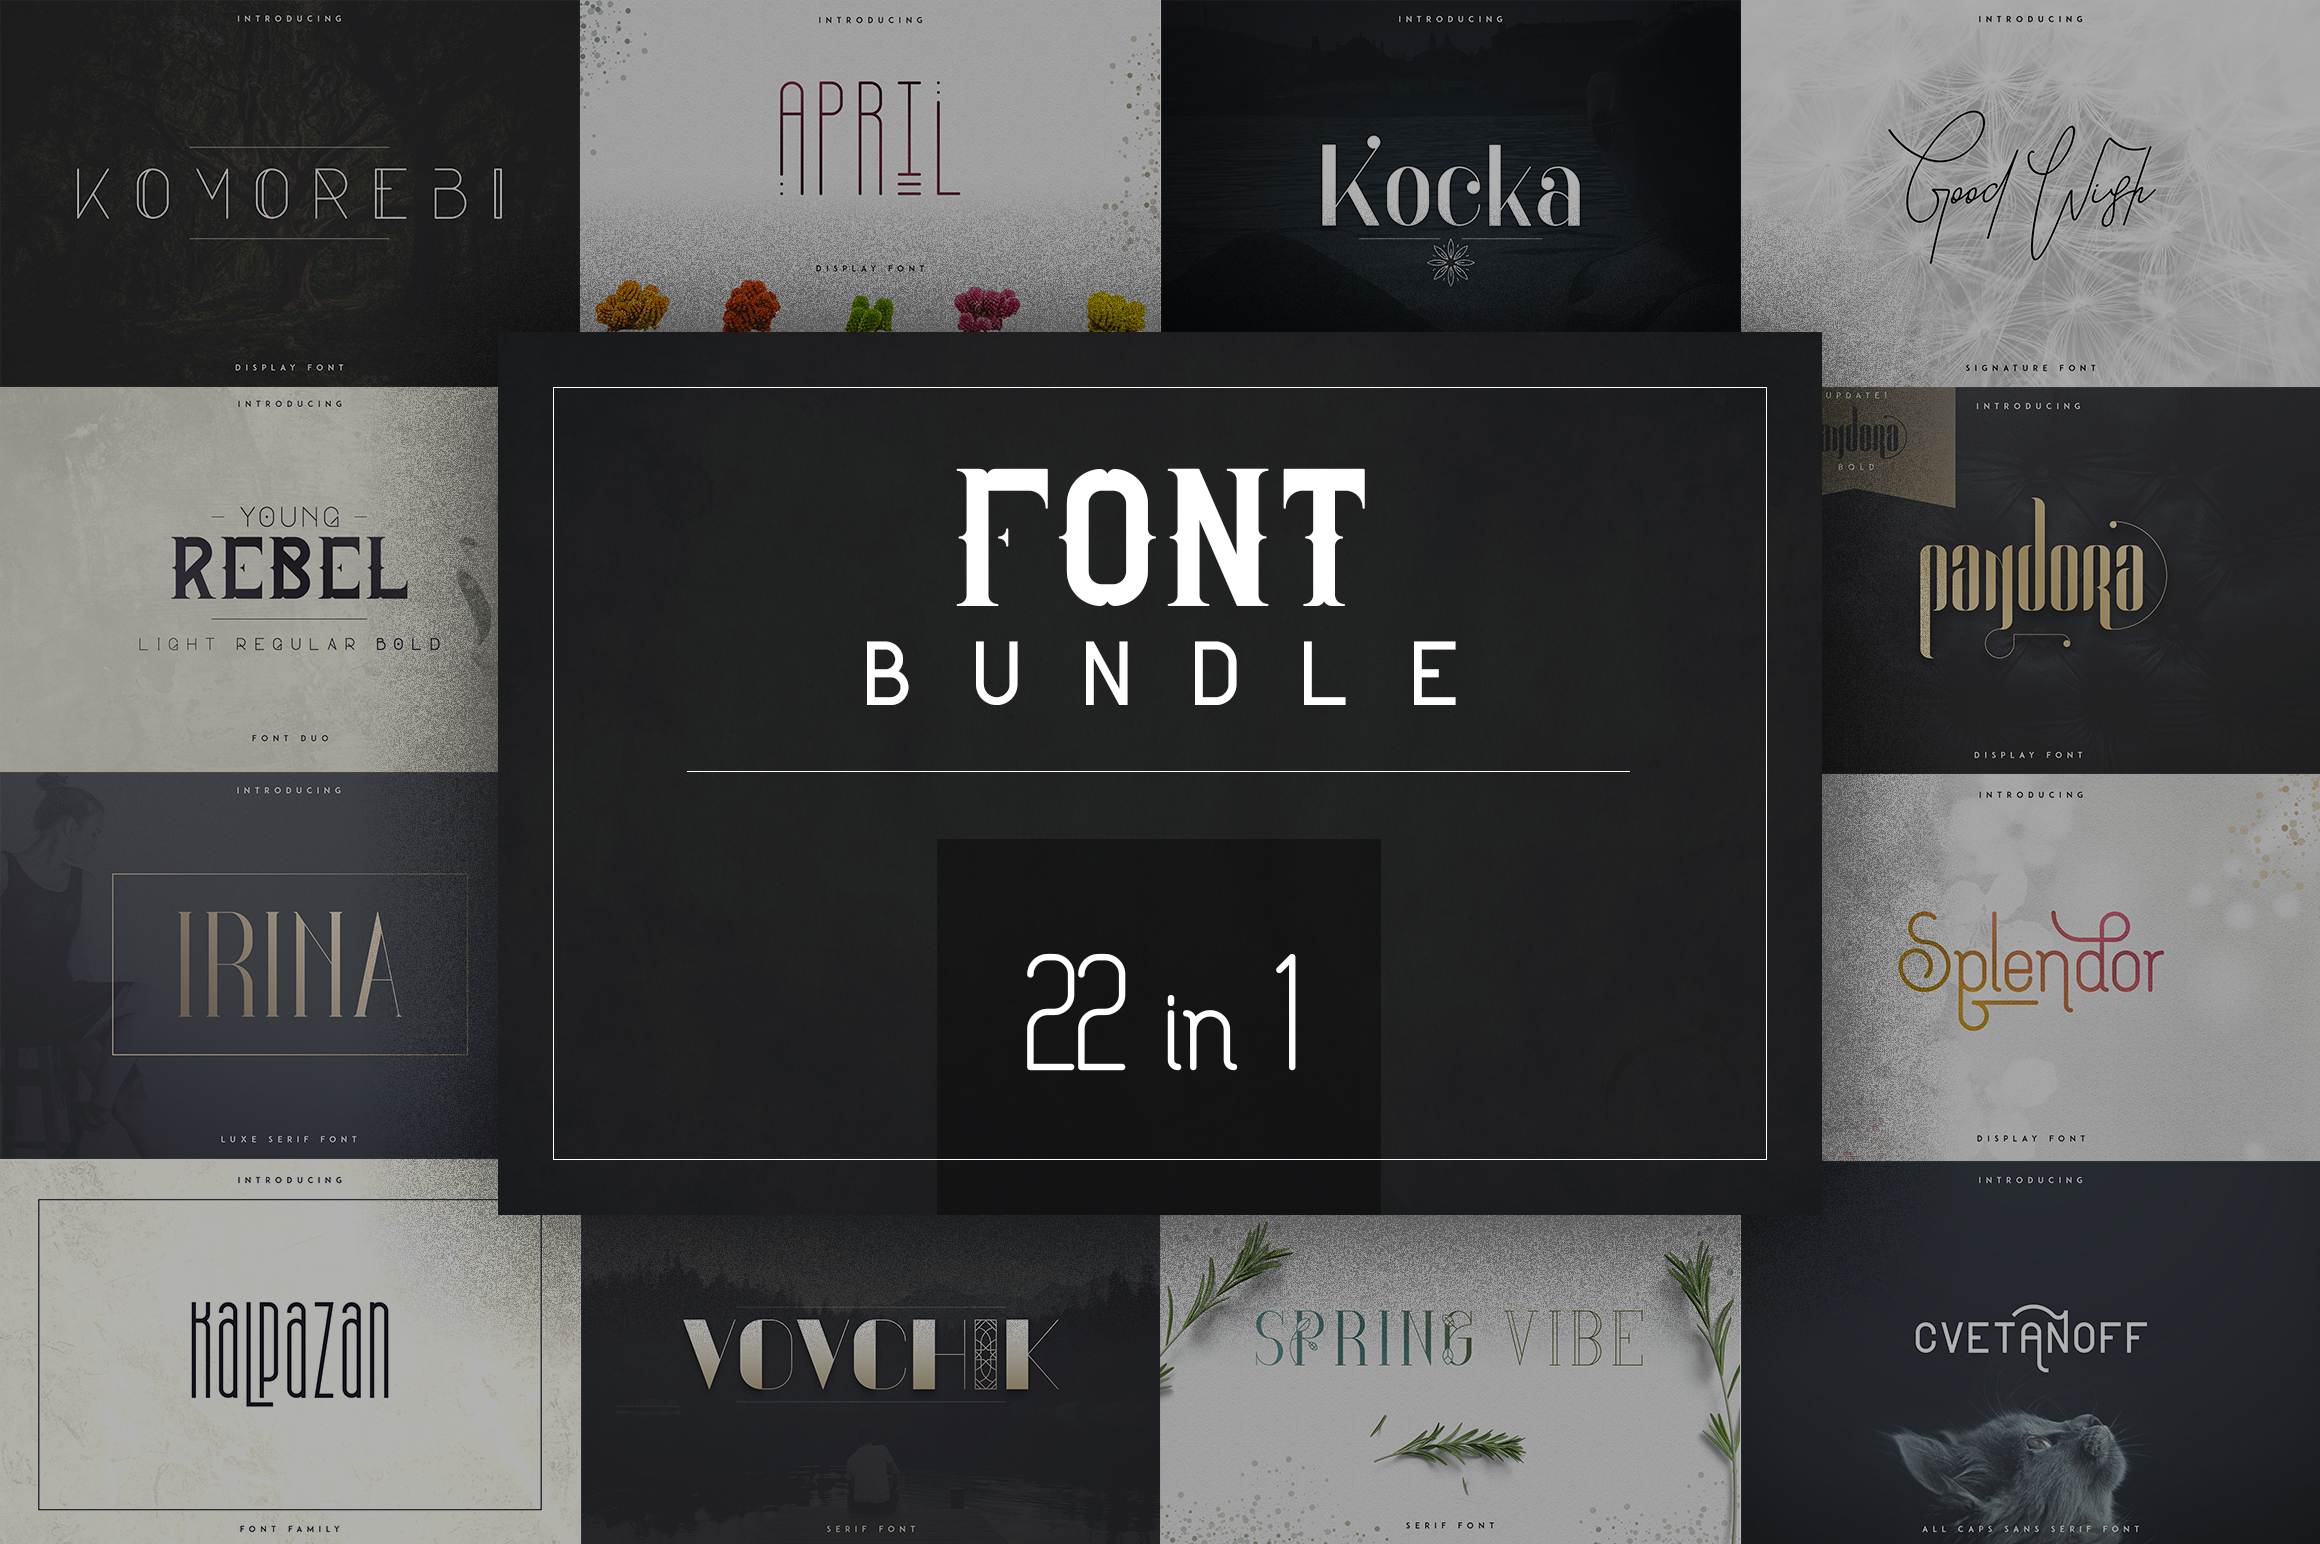 22in1 Legendary Font Bundle example image 1